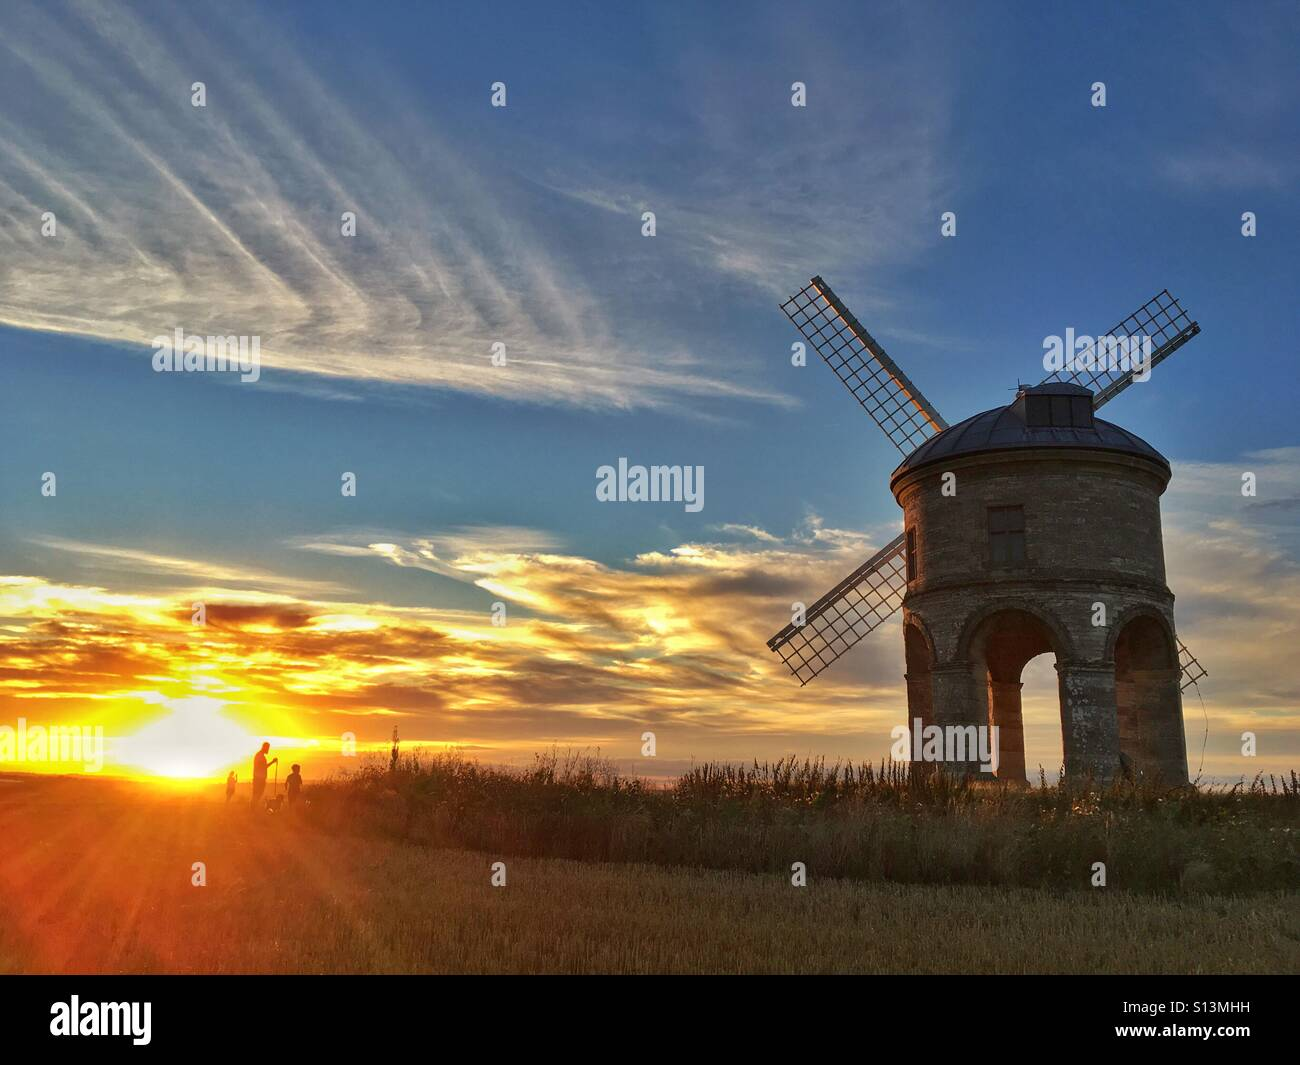 Windmill in sunset - Stock Image